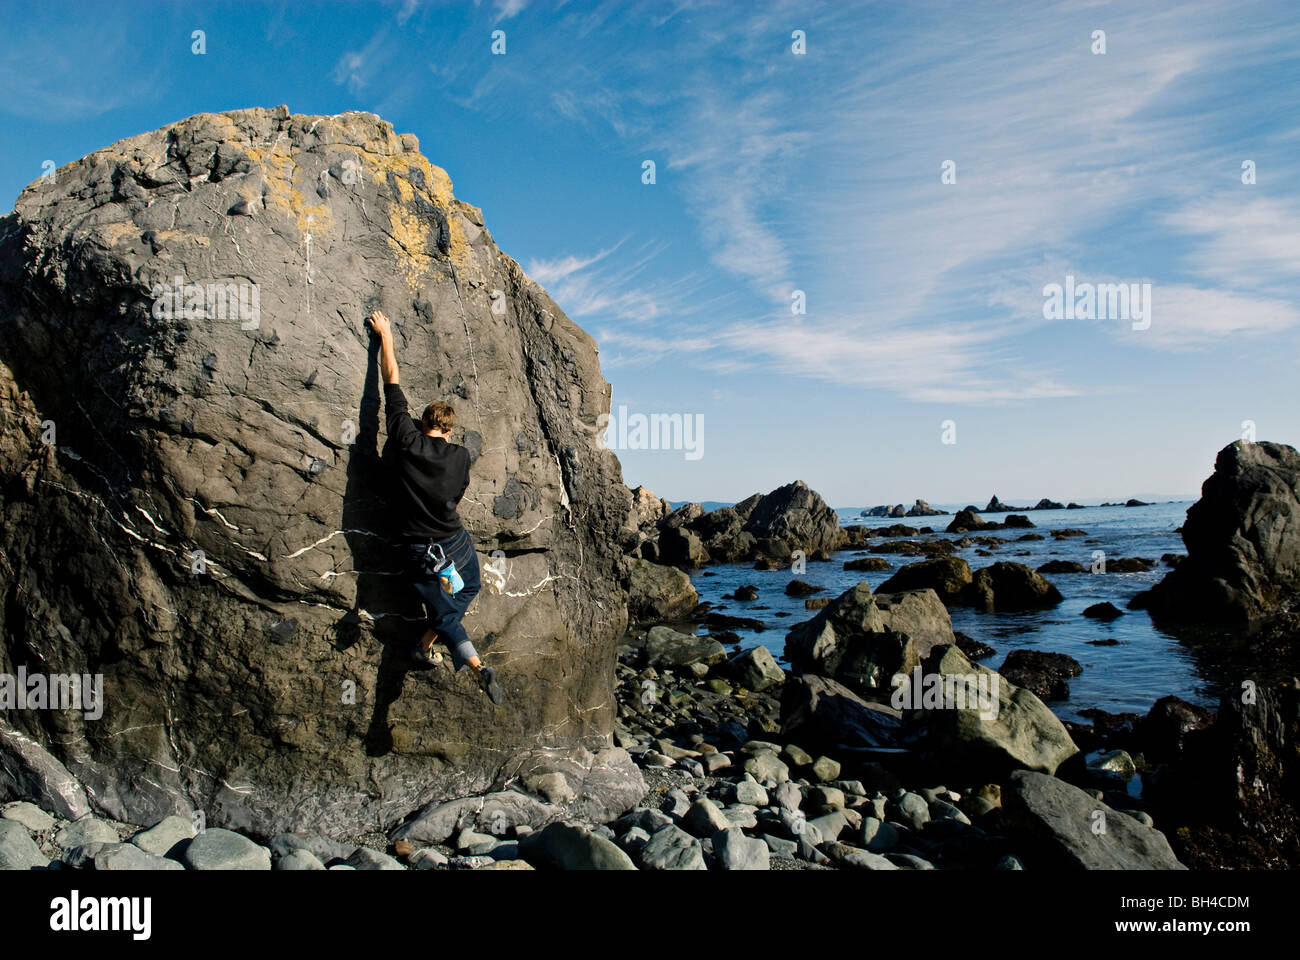 A young man reaches for a hold, while bouldering near the ocean in Cresent City, California. - Stock Image